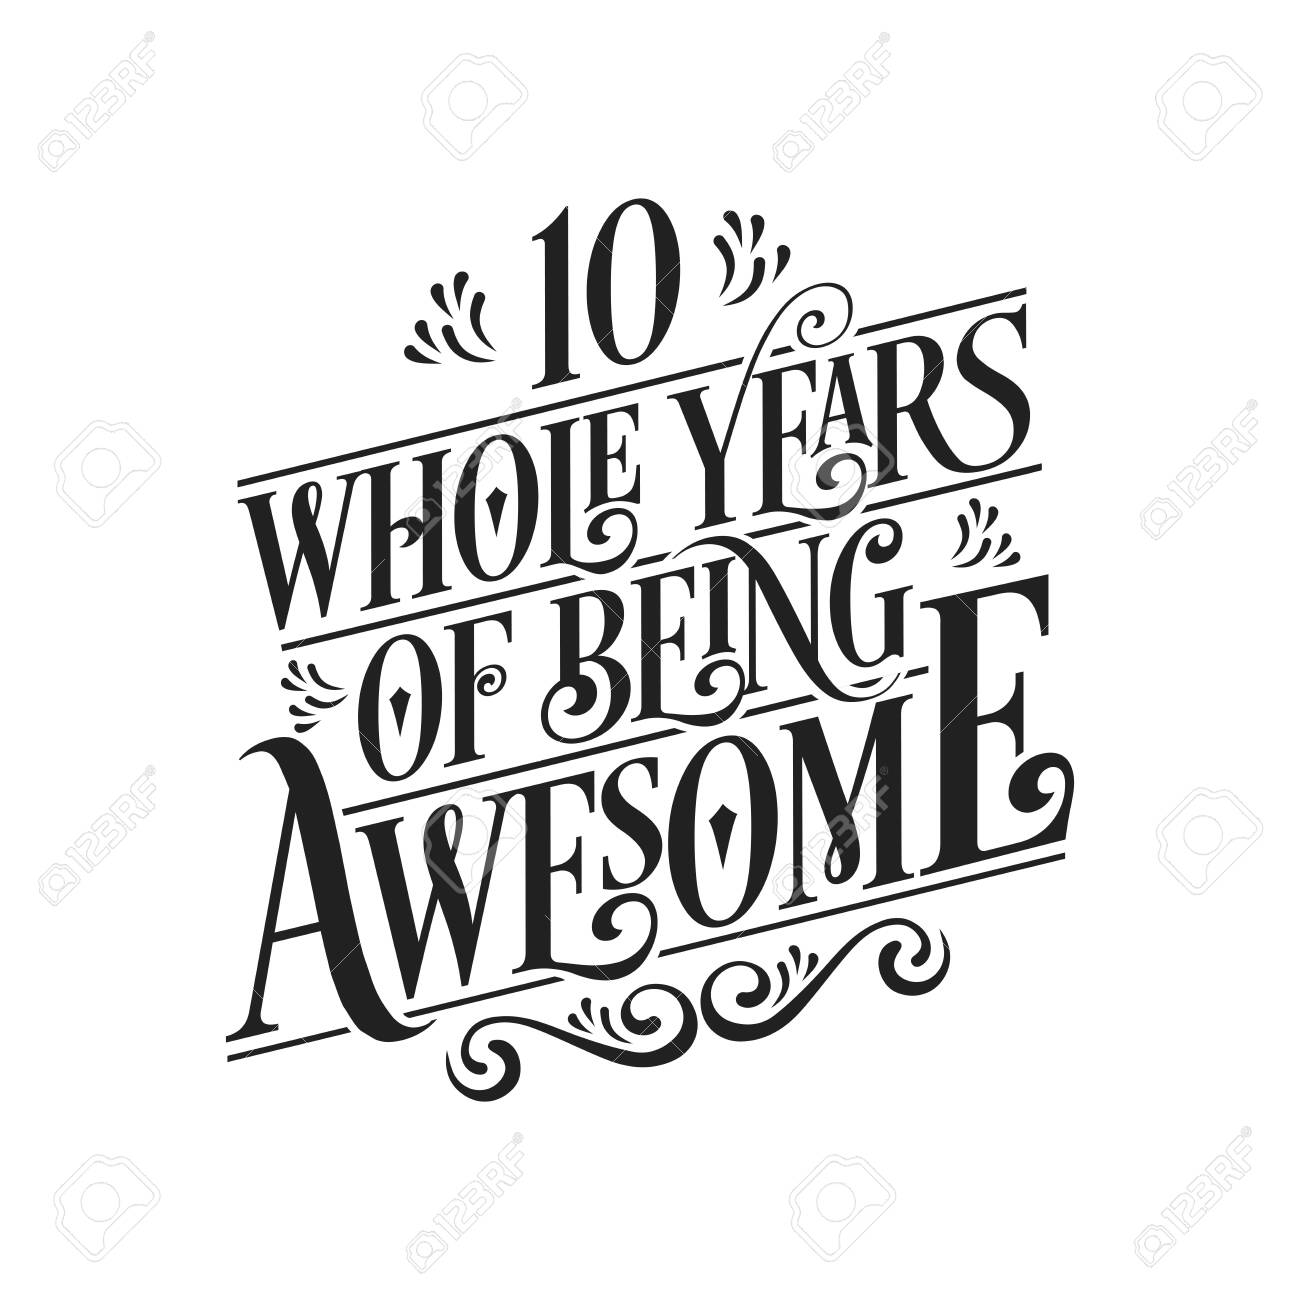 10 Years Birthday And 10 Years Wedding Anniversary Typography Royalty Free Cliparts Vectors And Stock Illustration Image 141187331